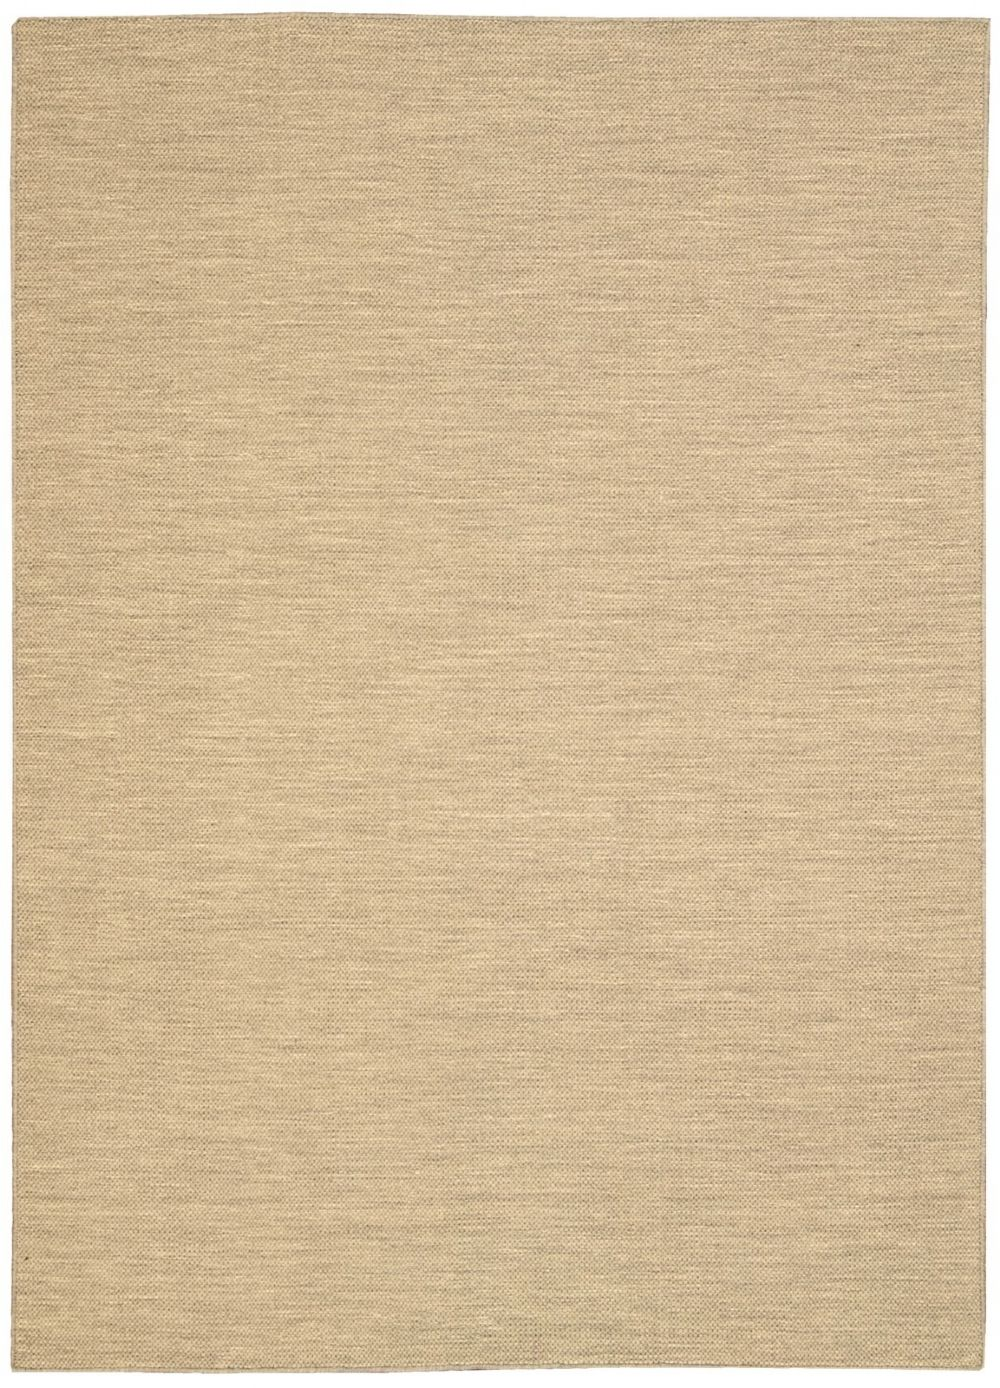 calvin klein plateau fossil contemporary area rug collection